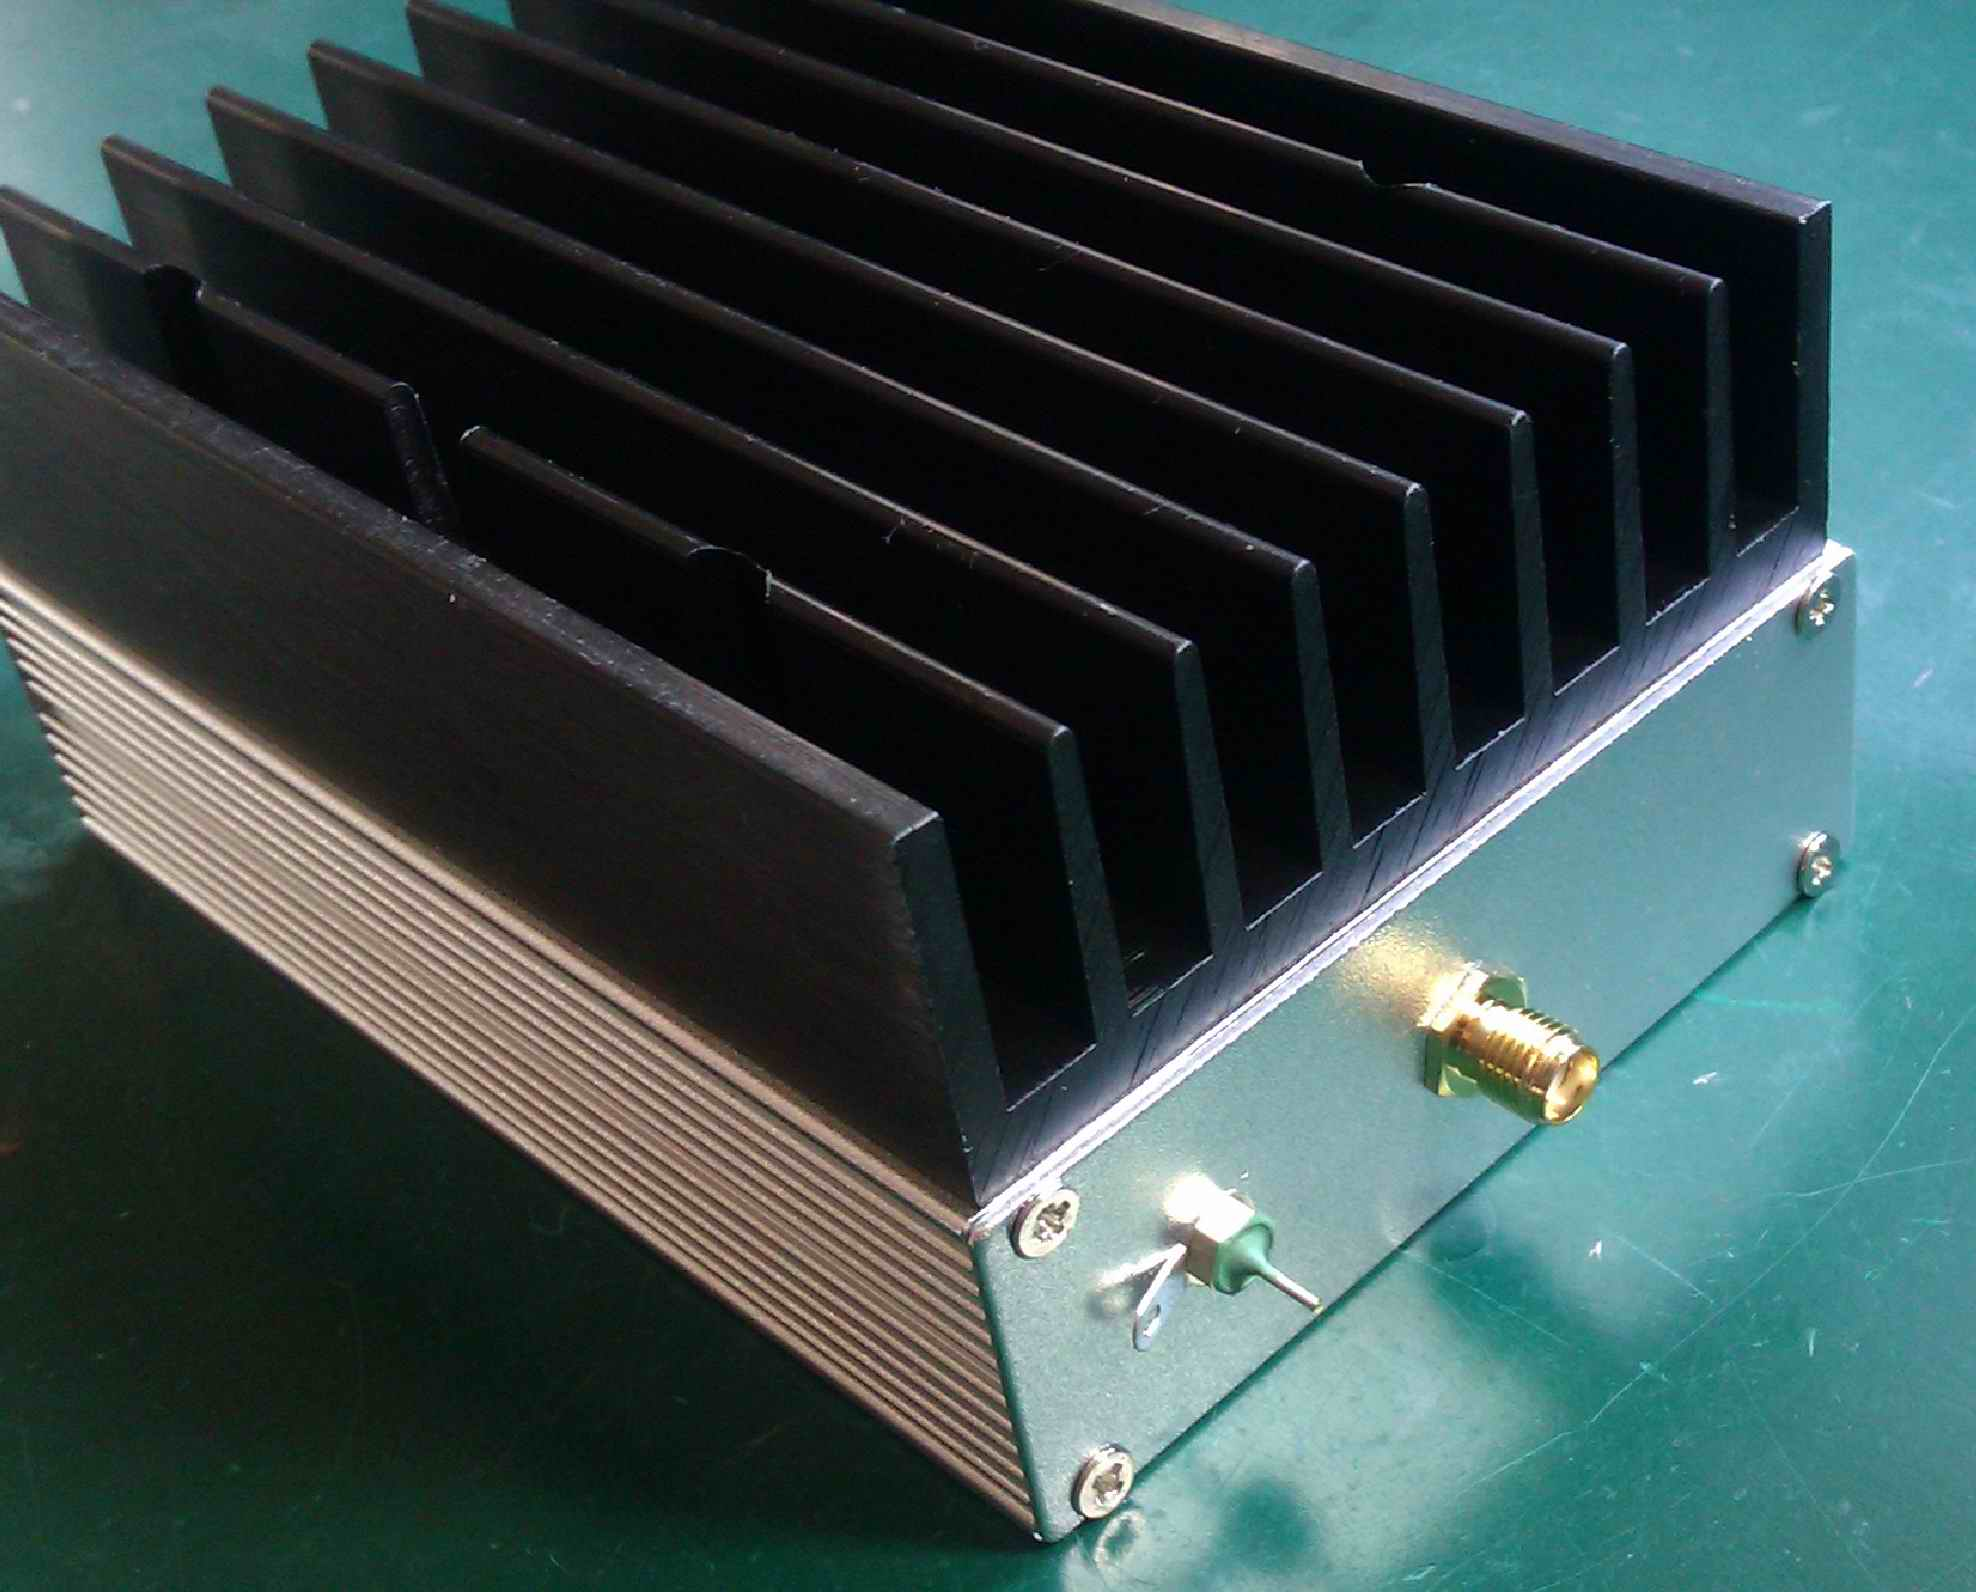 Ultra wideband RF amplifier, short wave amplifier, linear amplifier, 1MHz--130MHz, 6W, 43dBUltra wideband RF amplifier, short wave amplifier, linear amplifier, 1MHz--130MHz, 6W, 43dB